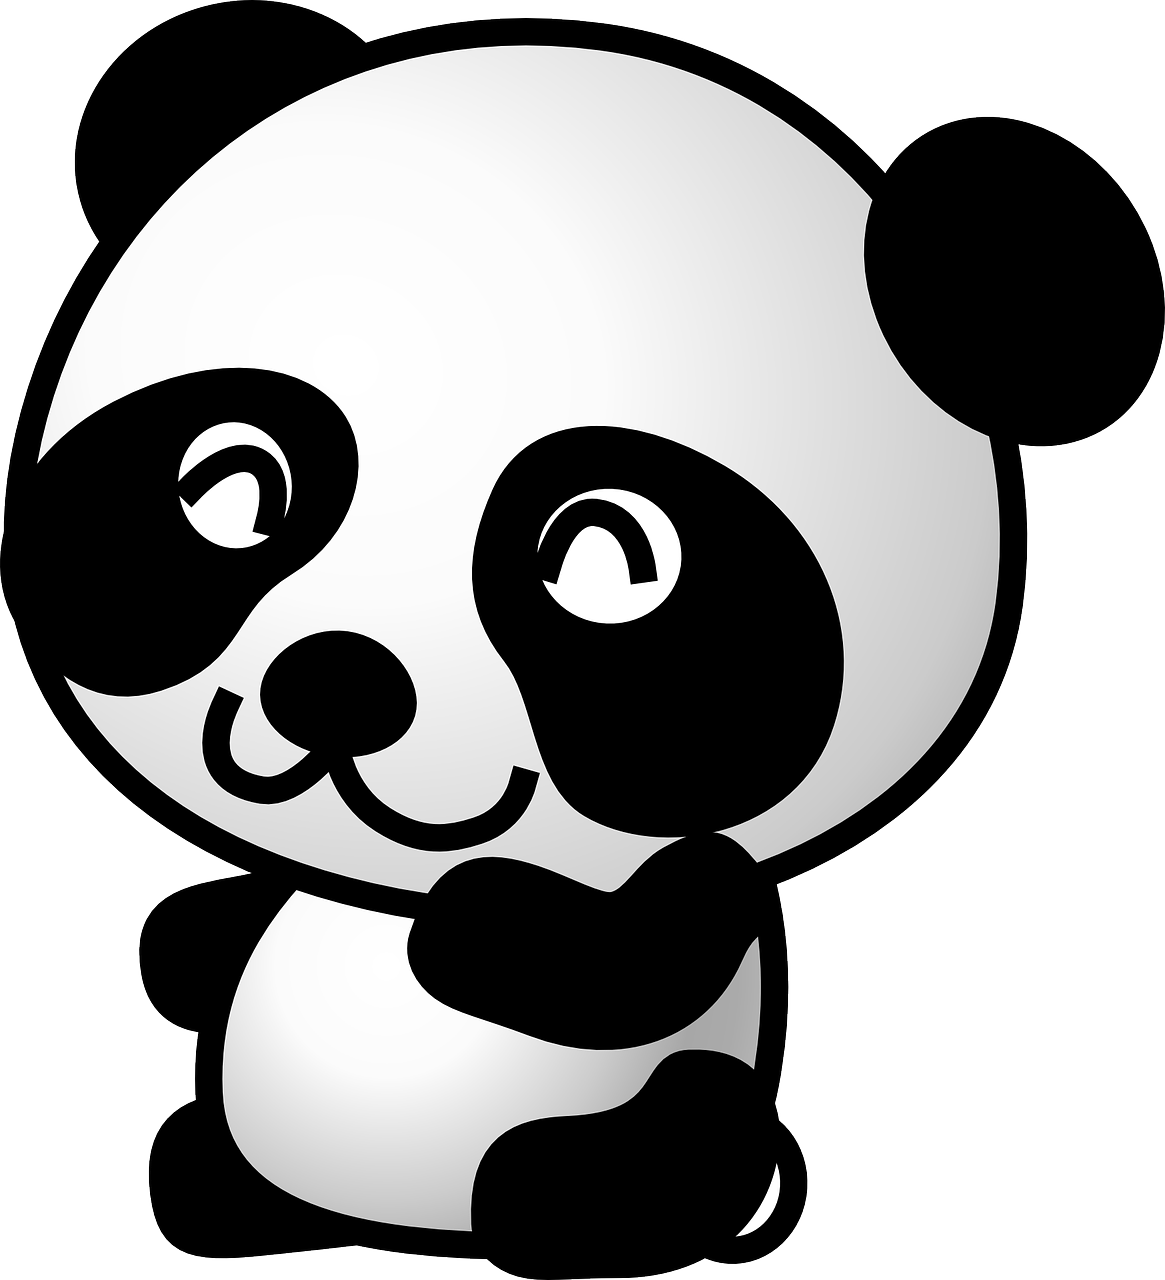 Don't mess with the Panda – get your content proofread